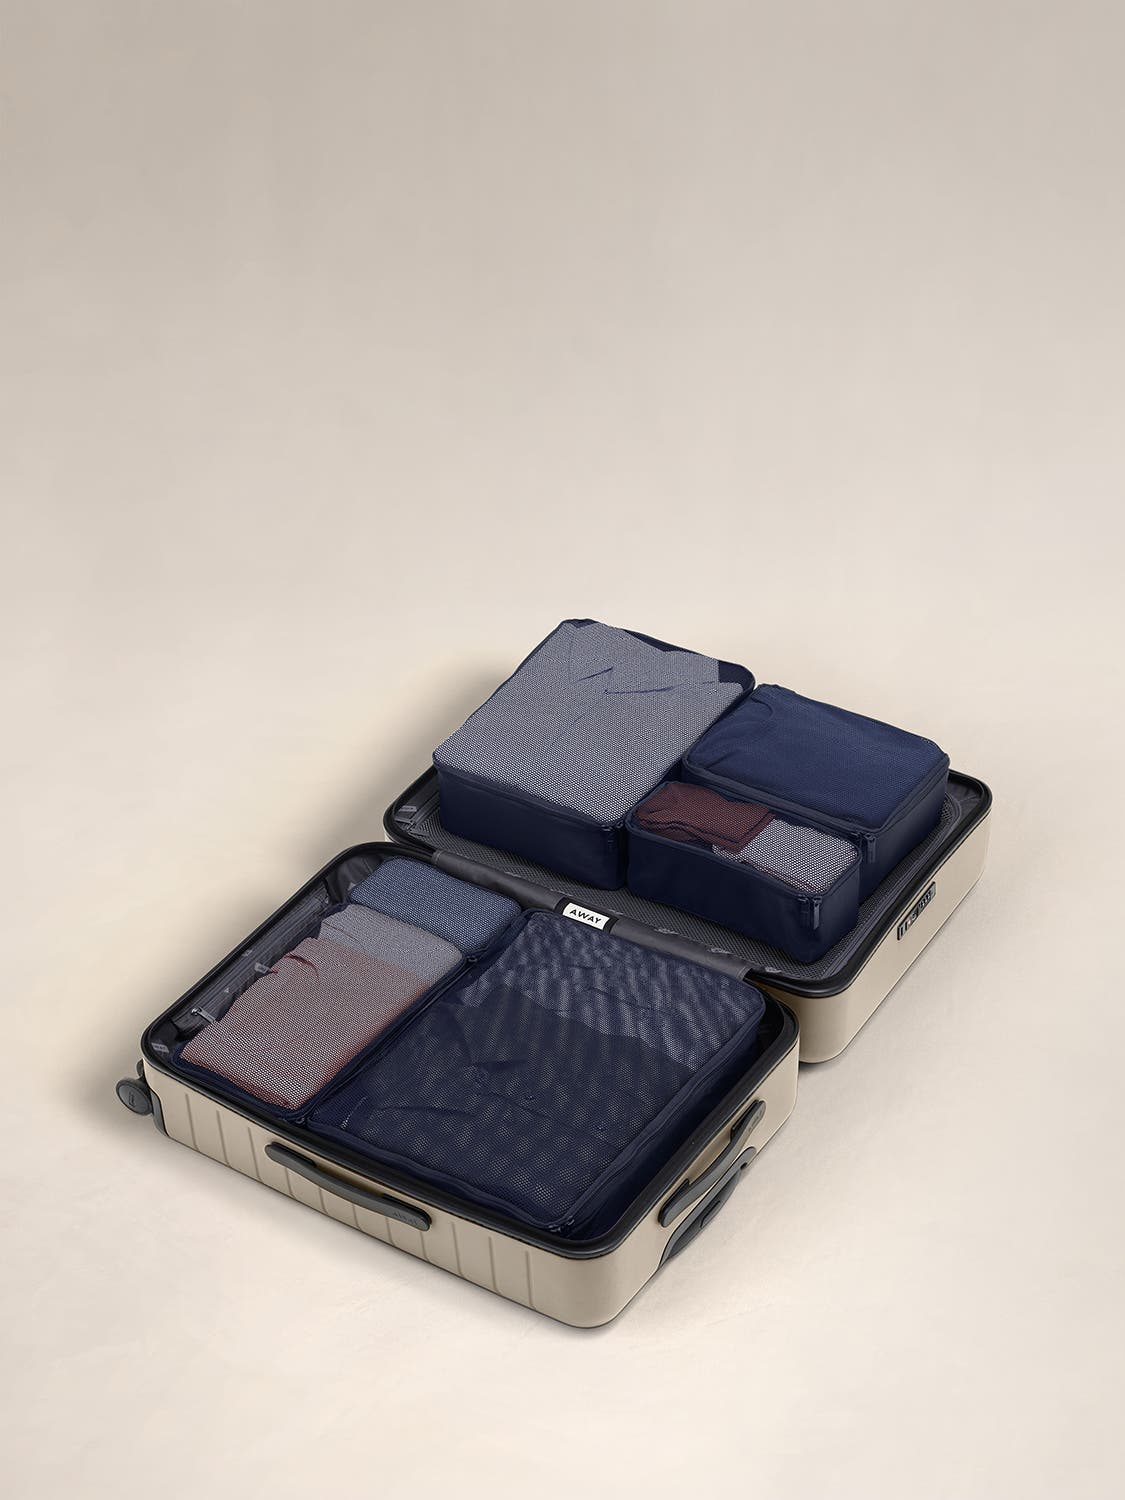 Navy travel packing cubes displayed in an Away suitcase